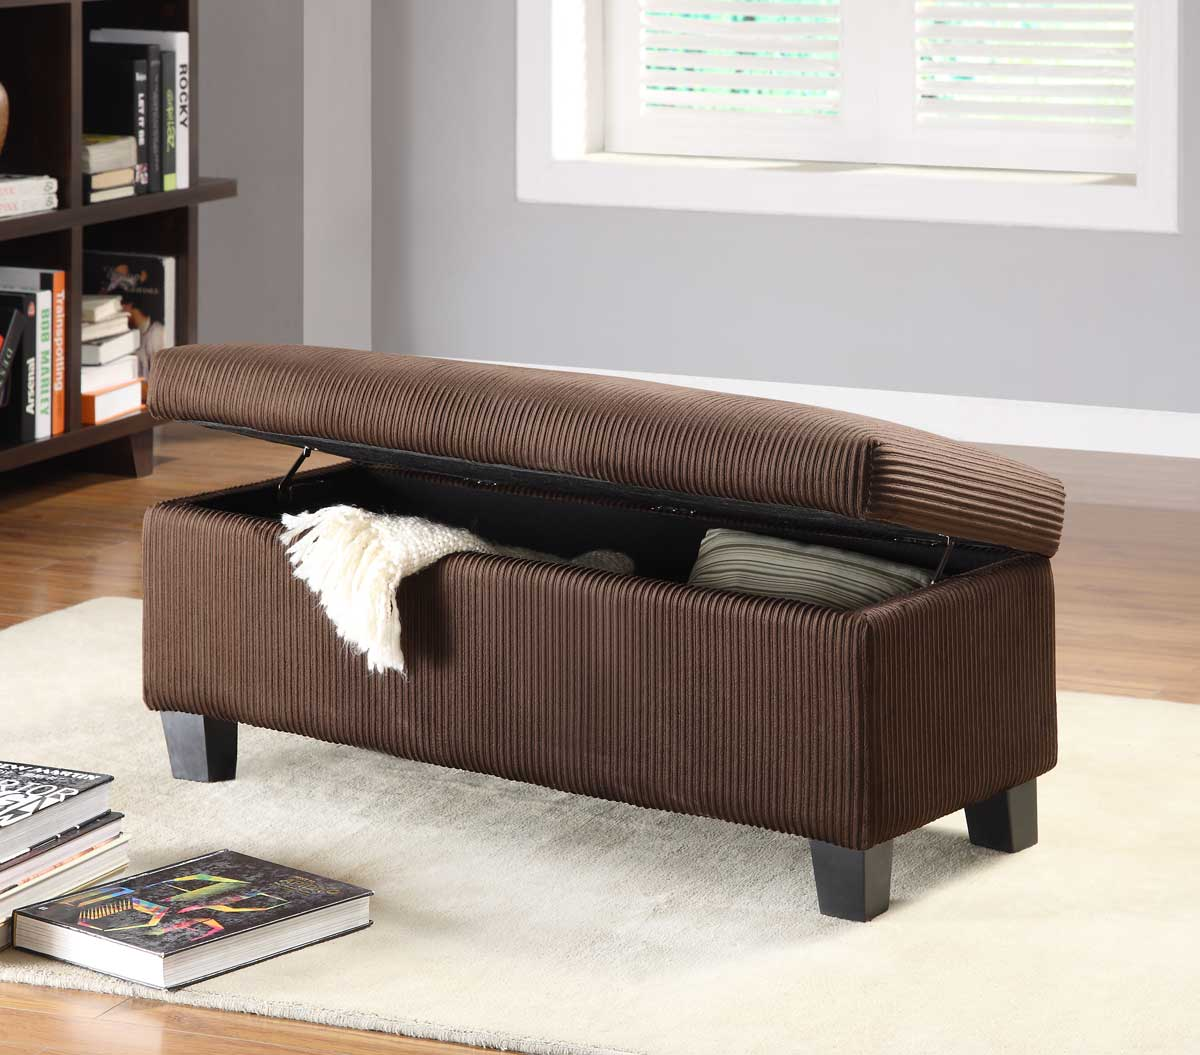 Homelegance Clair Lift Top Storage Bench Ottoman - Chocolate Corduroy